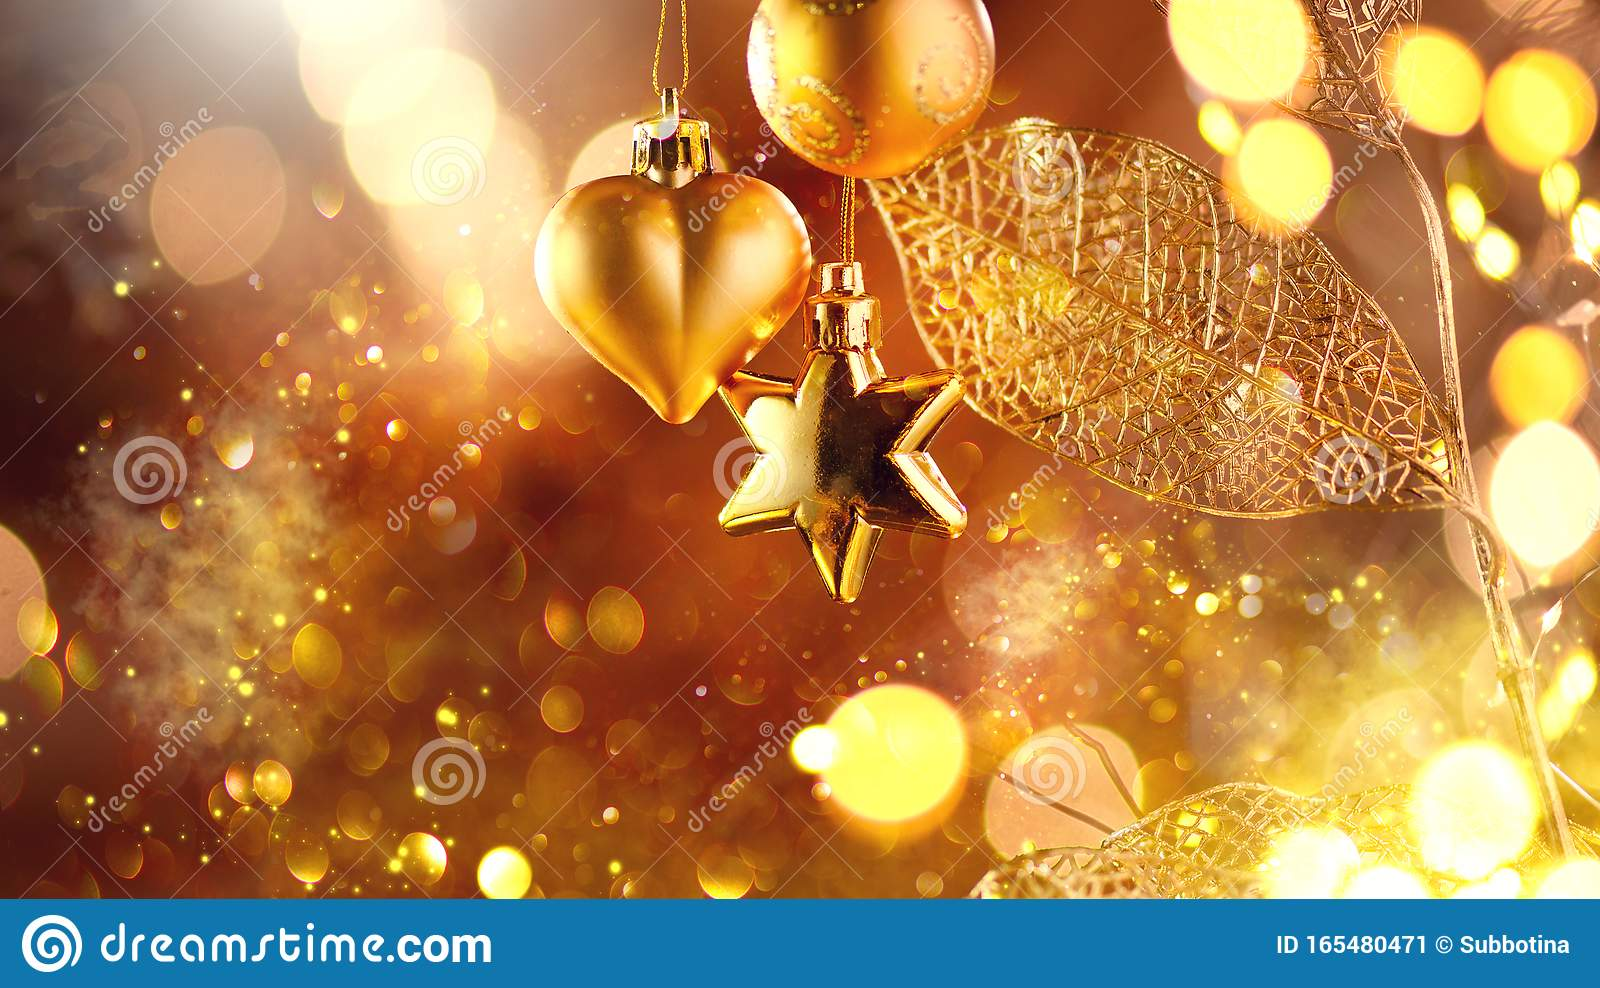 Christmas and New Year golden Decoration. Abstract Blurred Bokeh Holiday Background with beautiful baubles and Blinking Garland